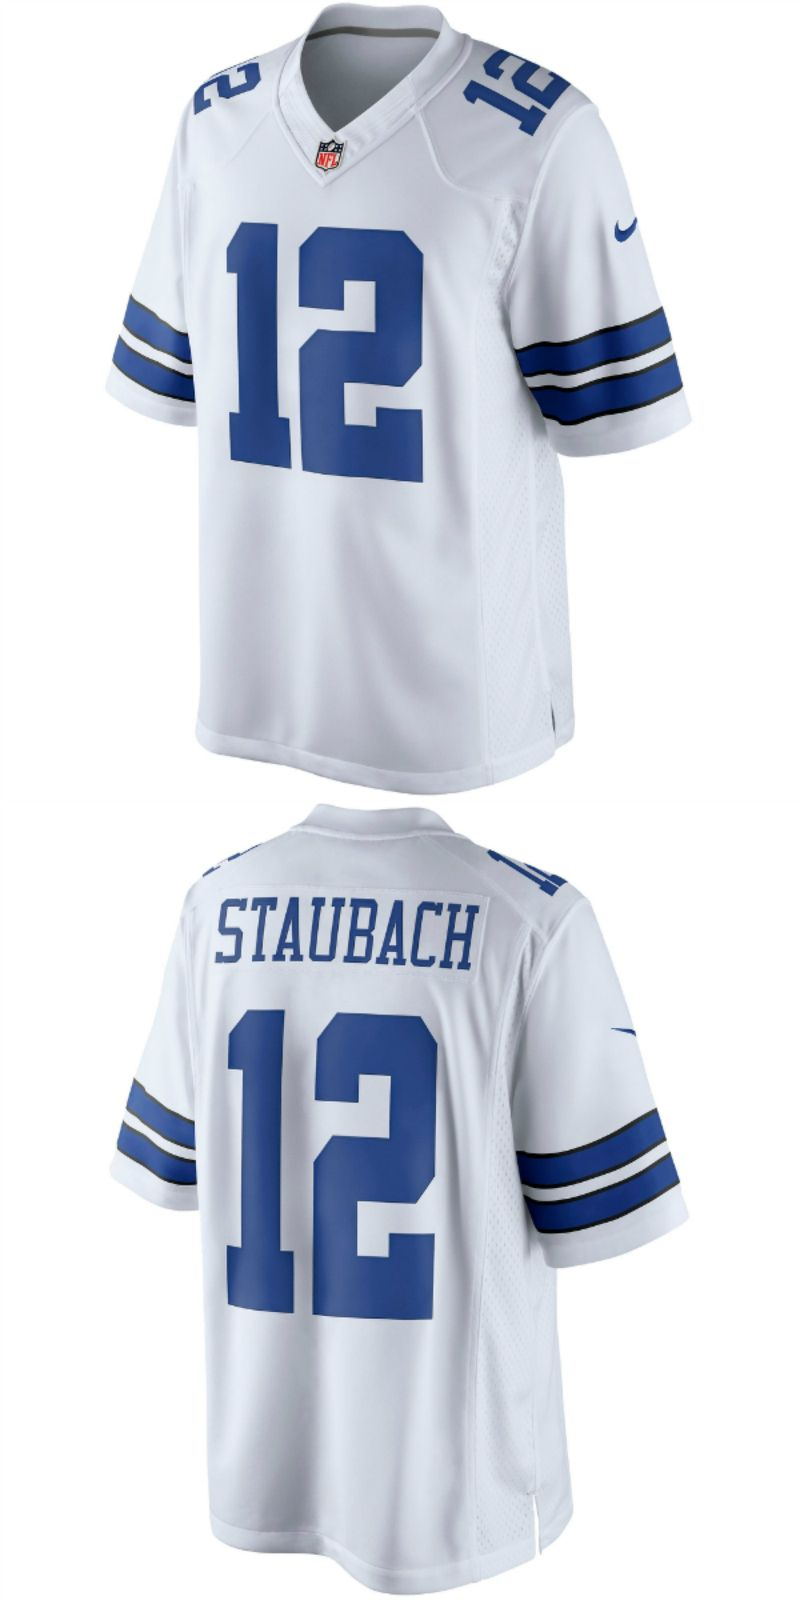 best sneakers 16c7b d1a30 UP TO 70% OFF. Roger Staubach Dallas Cowboys Nike Retired ...